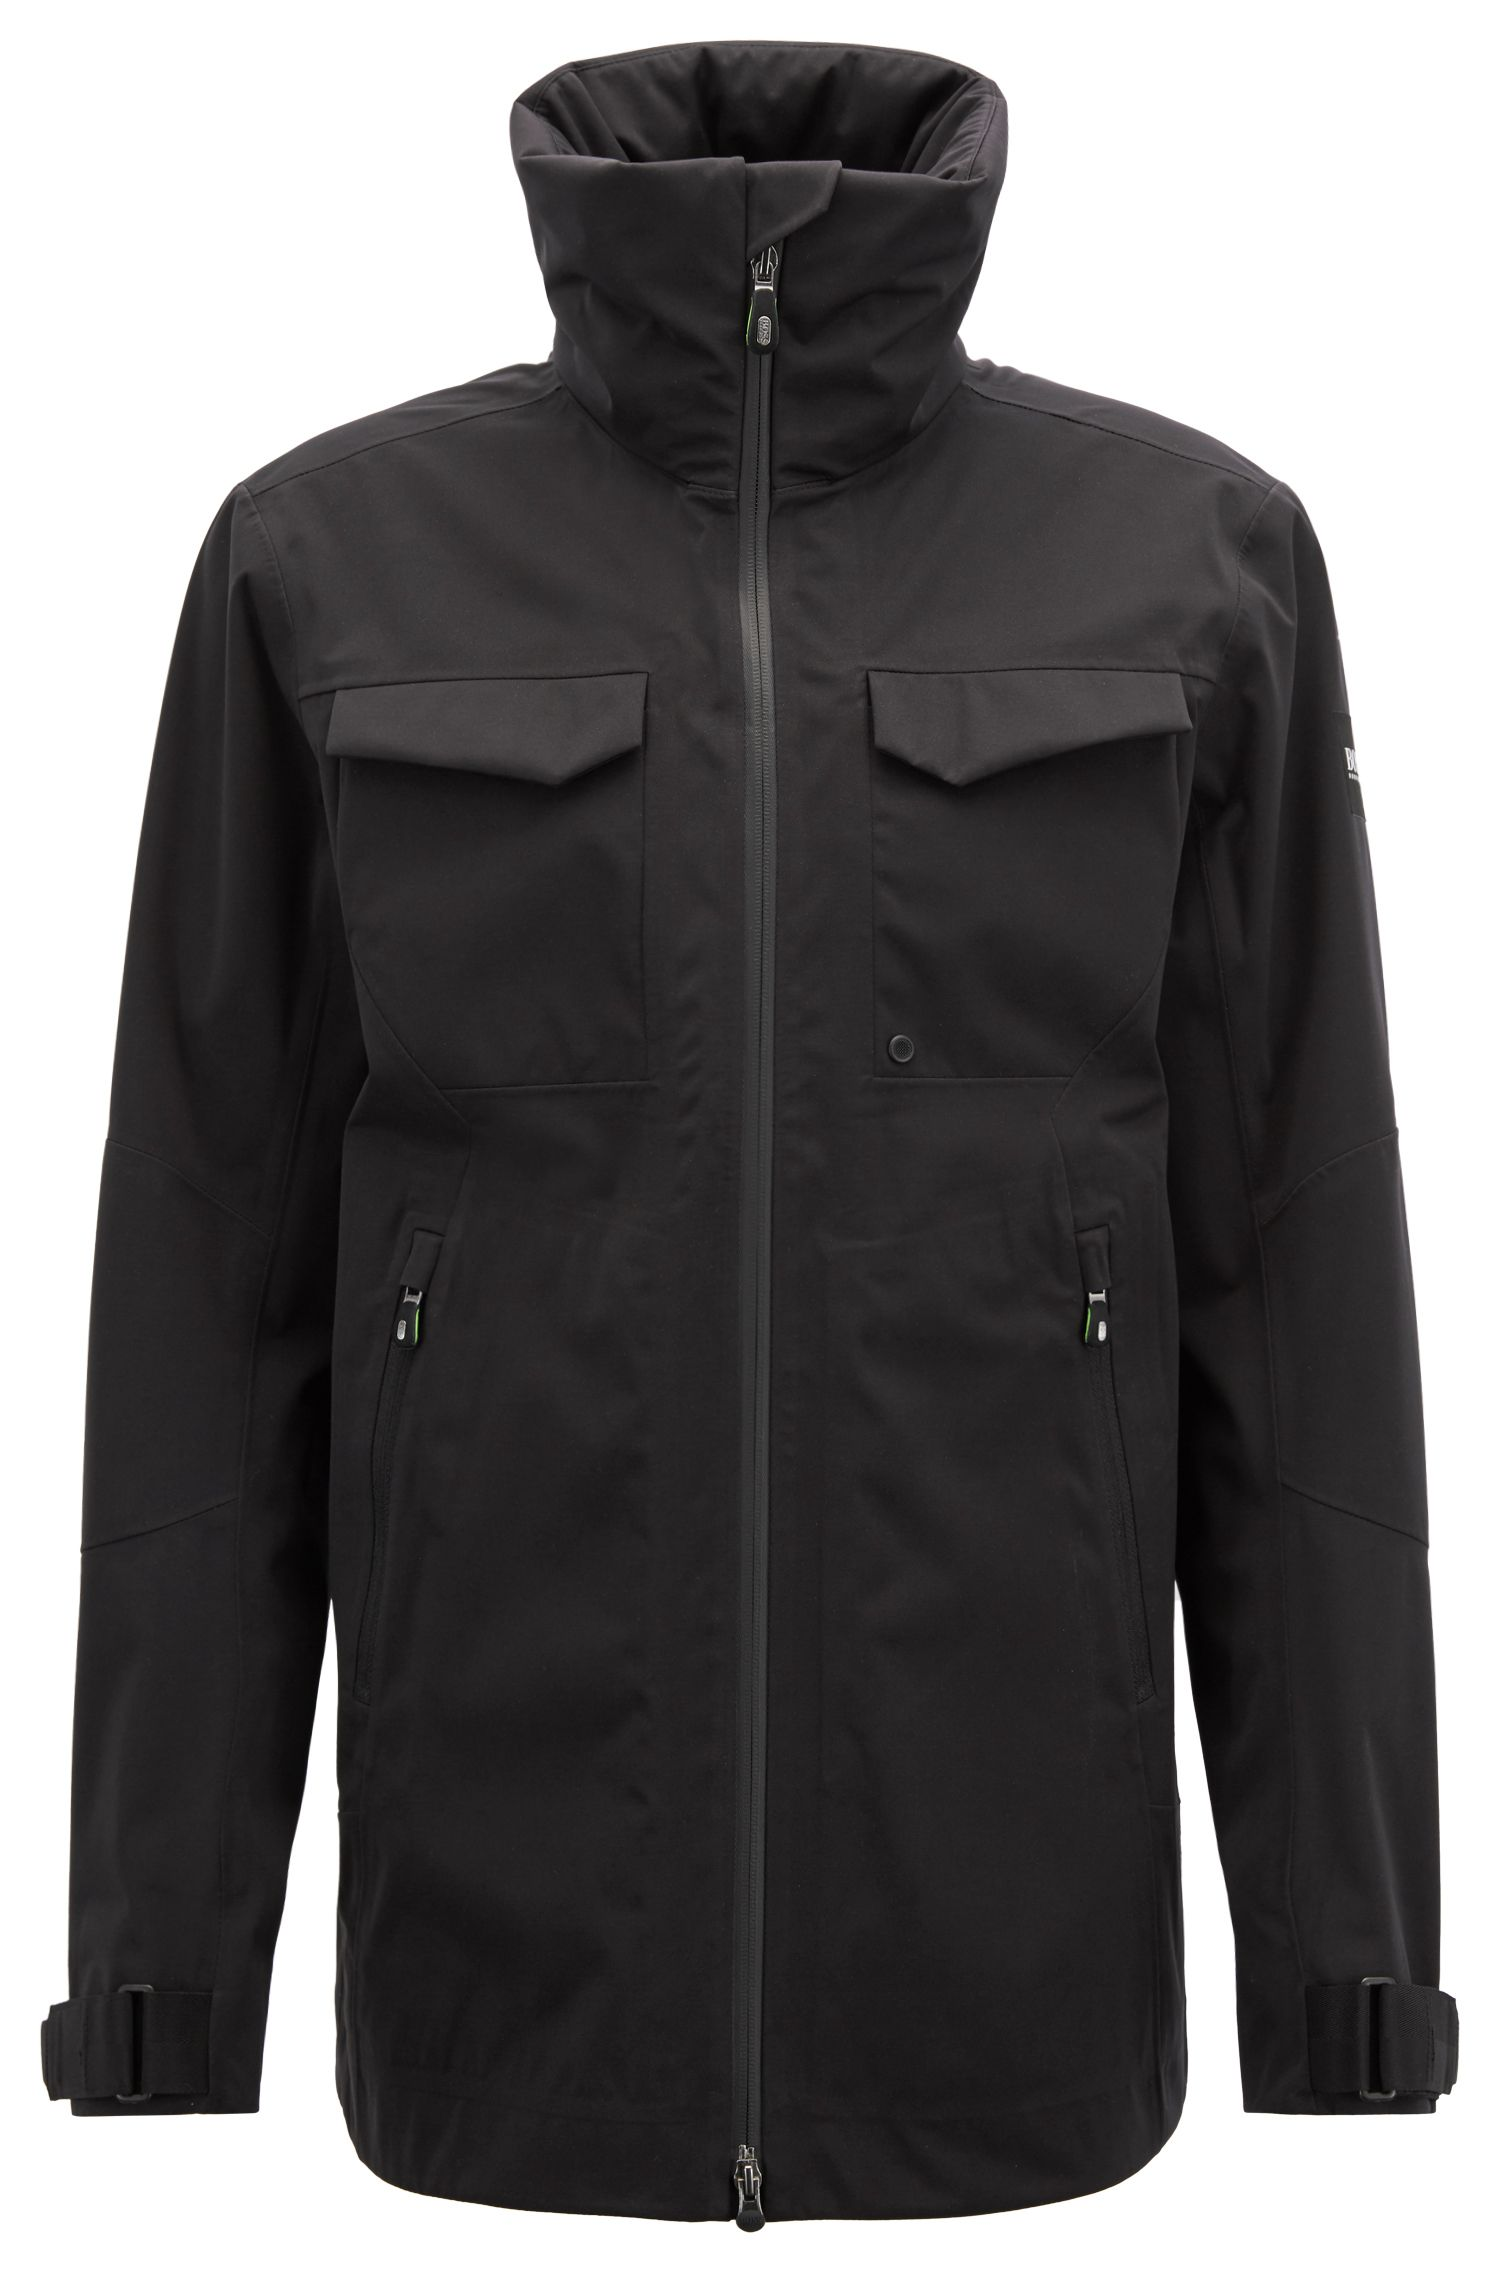 Waterproof softshell jacket with stowaway hood